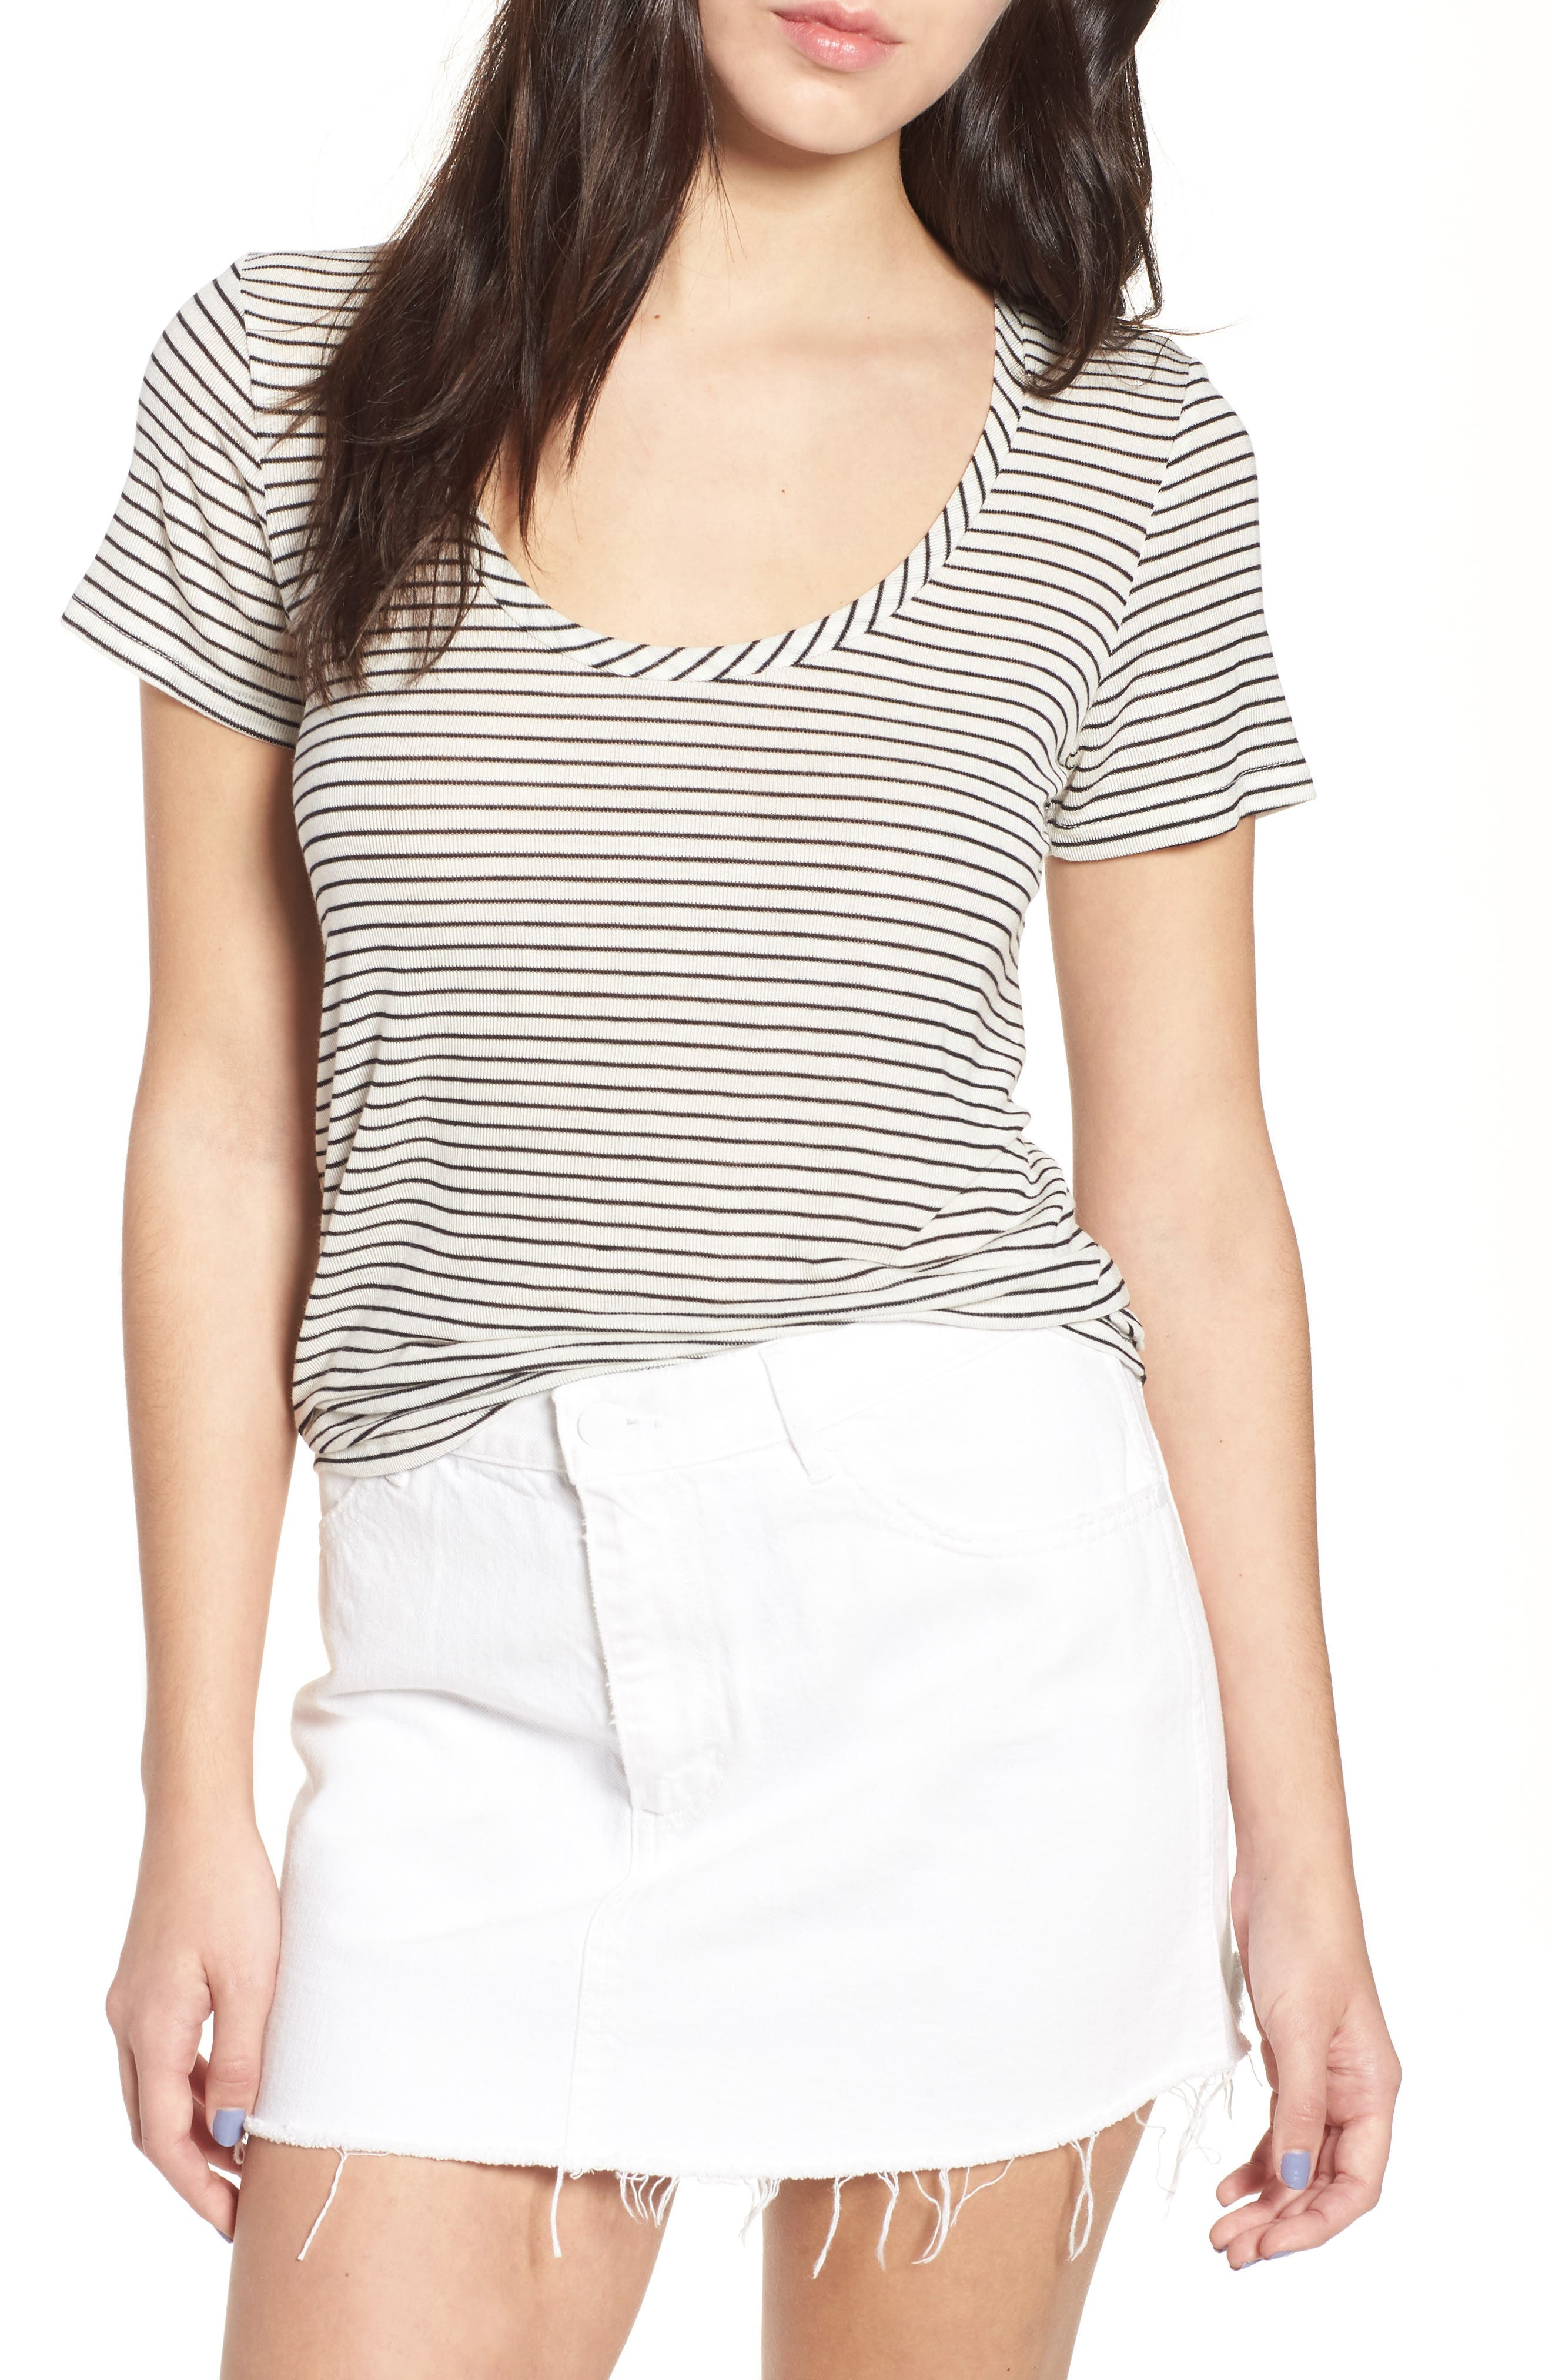 Scoop Neck Tee,                             Main thumbnail 1, color,                             Black/ White Stripe